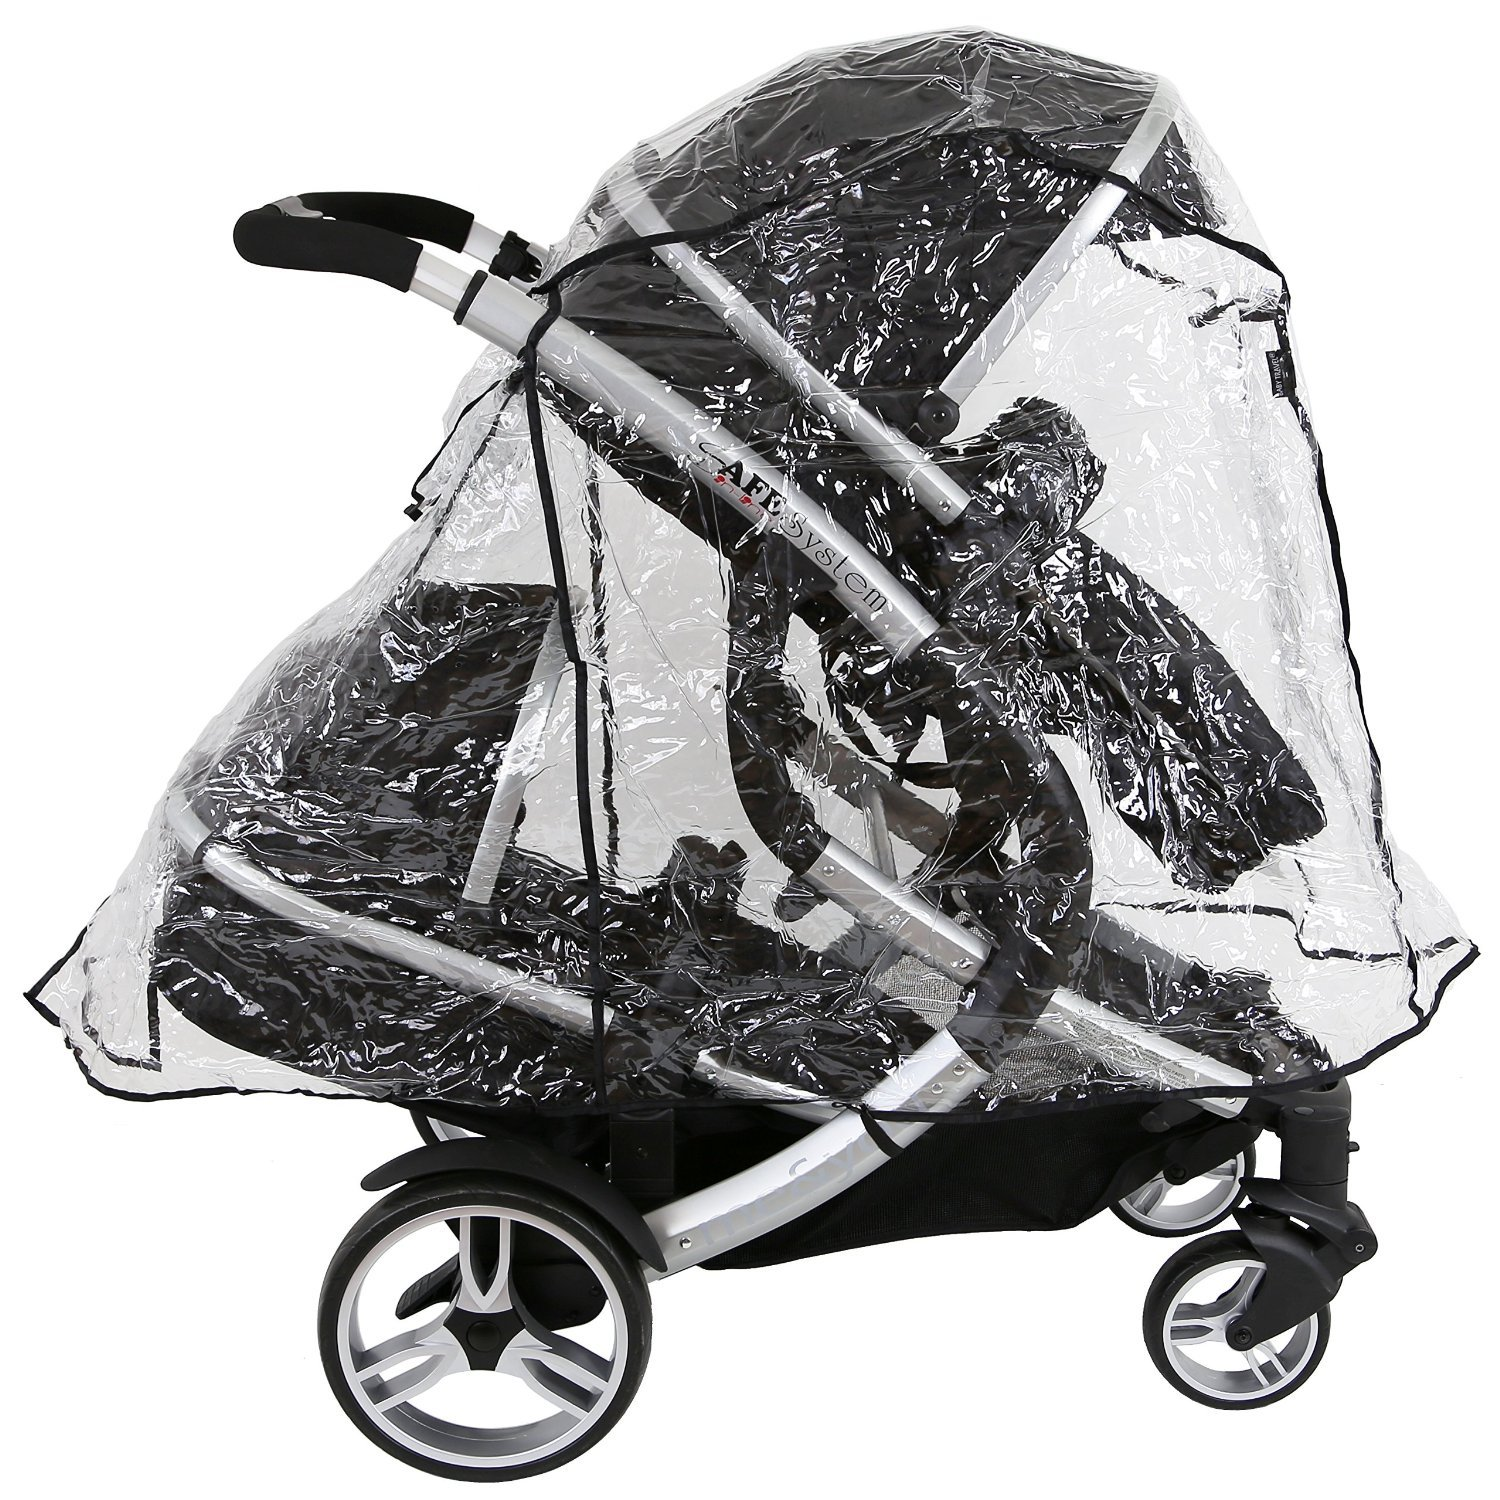 Large All In One Version Universal Britax Bdual Tandem Raincover iN LiNe